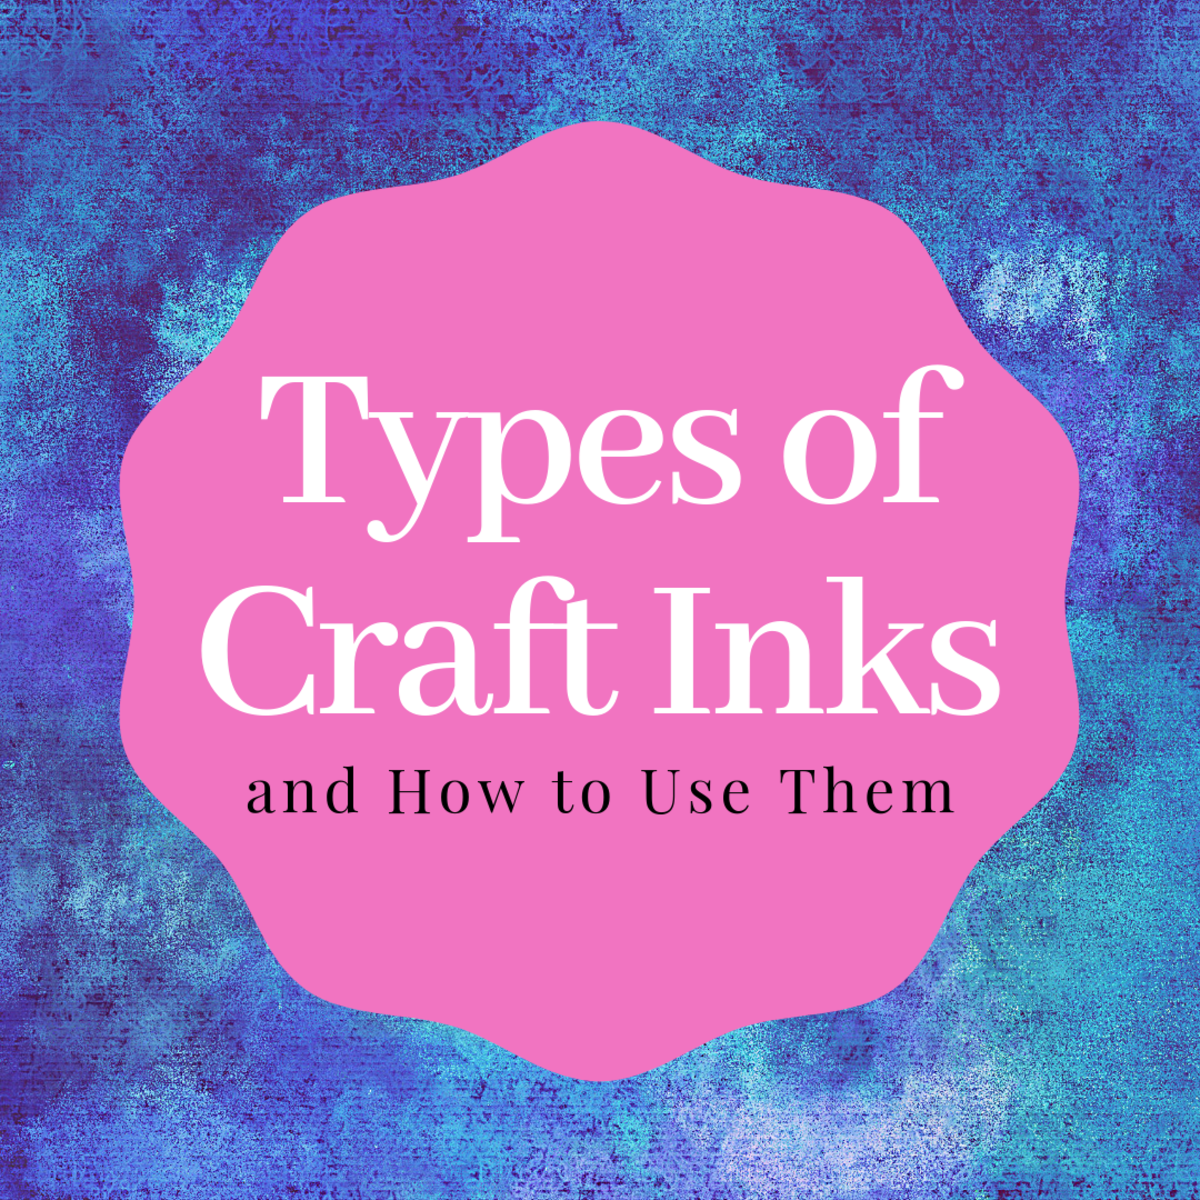 Learn about different types of craft inks and tips for how to use them.